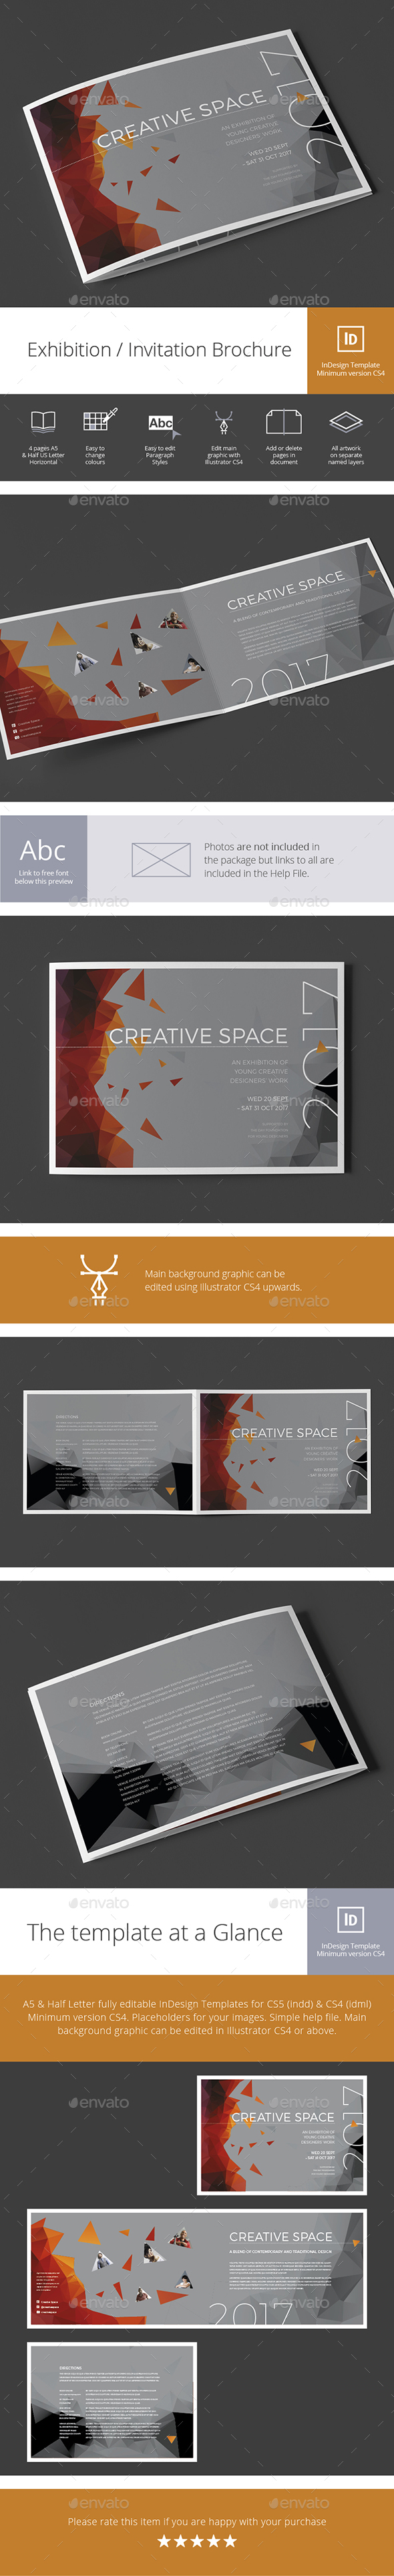 Exhibition / Invitation Brochure - Brochures Print Templates